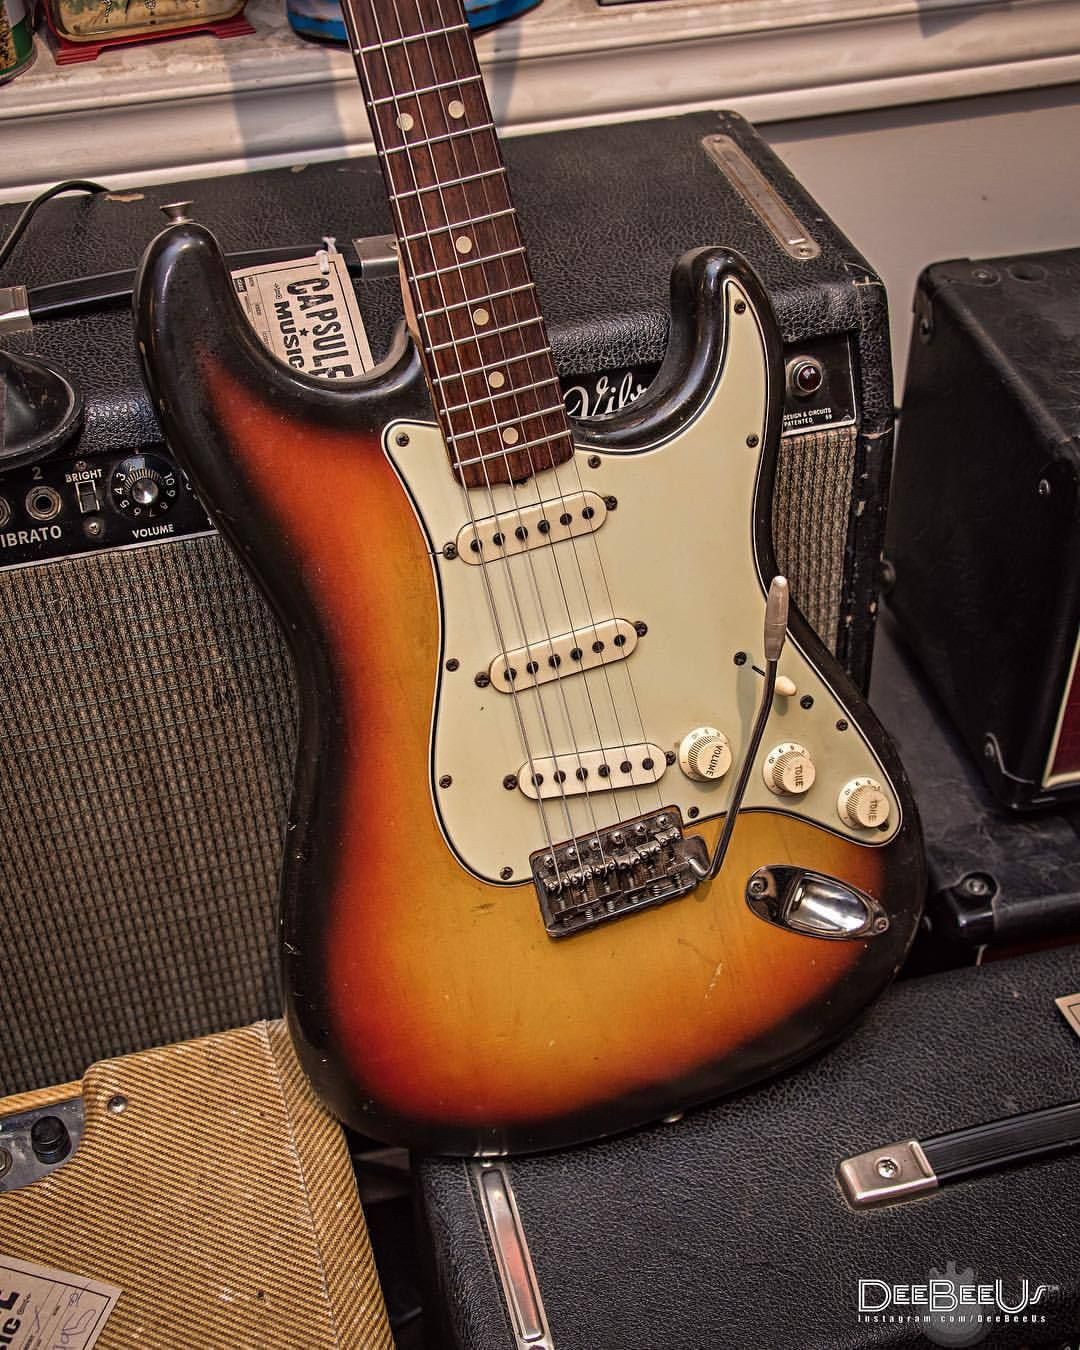 No Biggie Just A 1965 Stratocaster In Front Of A 1964 Vibroverb Spotted At Capsulemusic Toronto Sure The Grill In 2020 Vintage Guitars Guitar Fender Guitar Amps